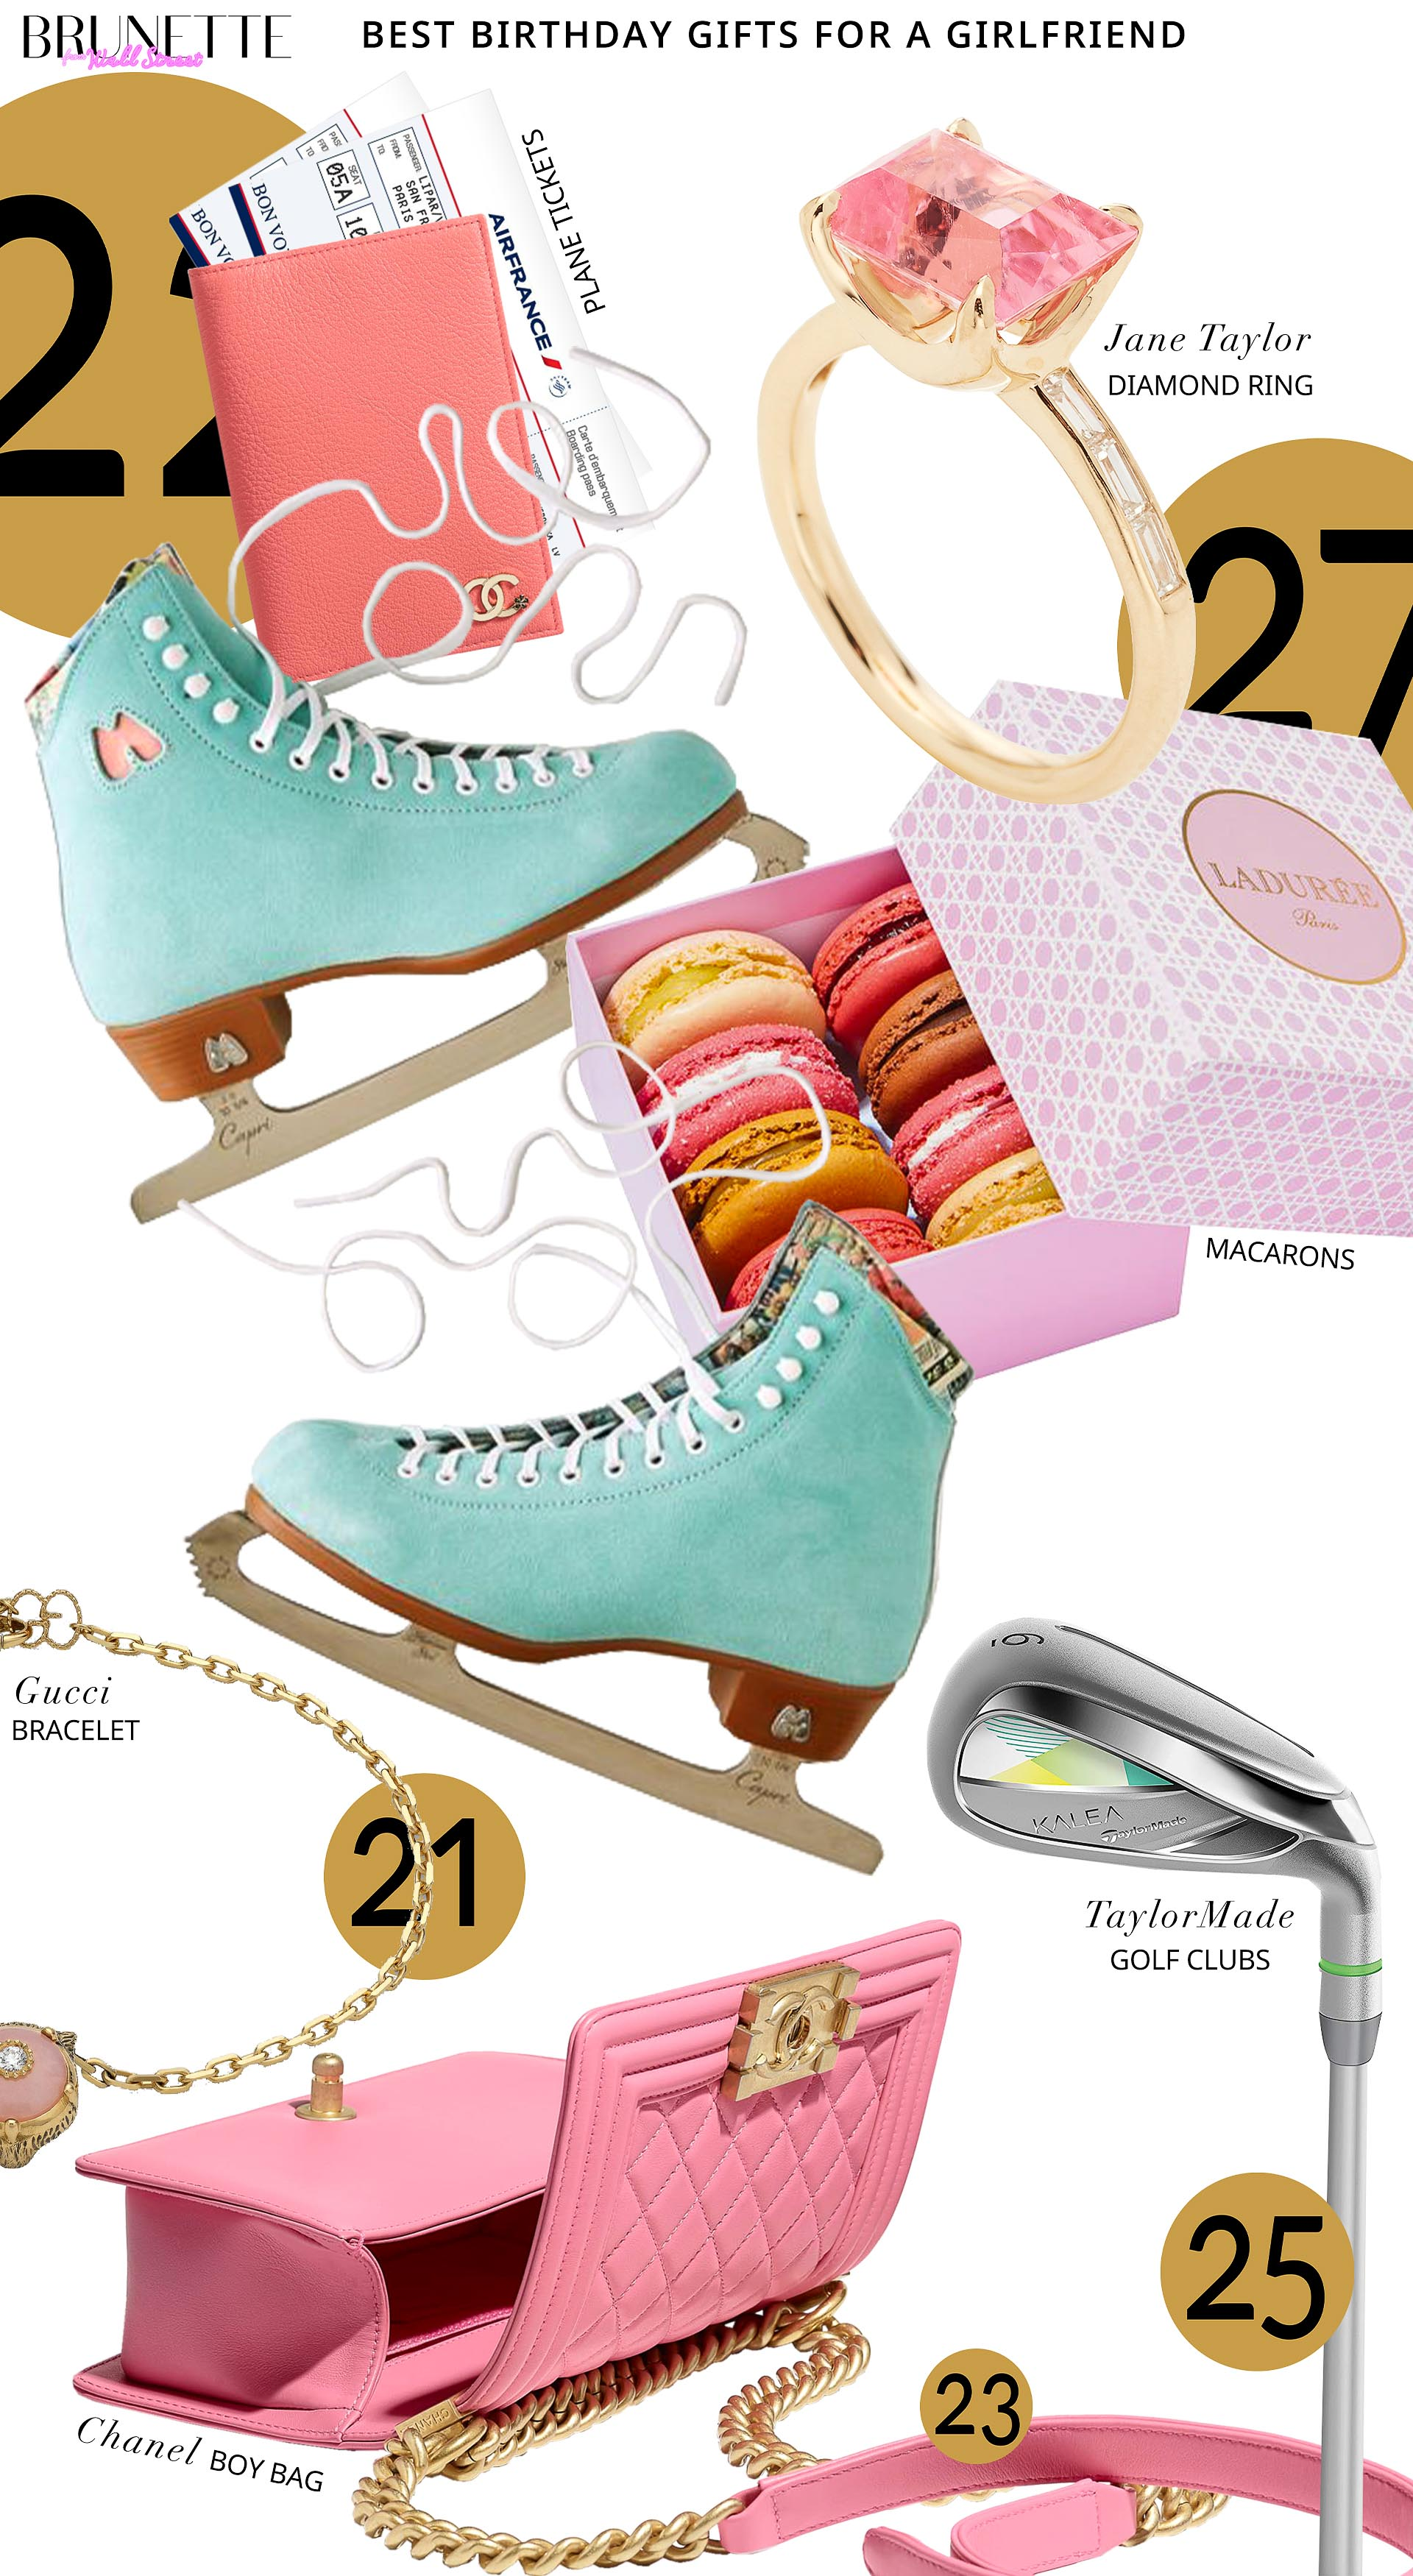 Brunette from Wall Street Best birthday presents for a girlfriend Chanel bag ice skates laduree macarons Chanel passport cover plane tickets engagement ring kalea golf club